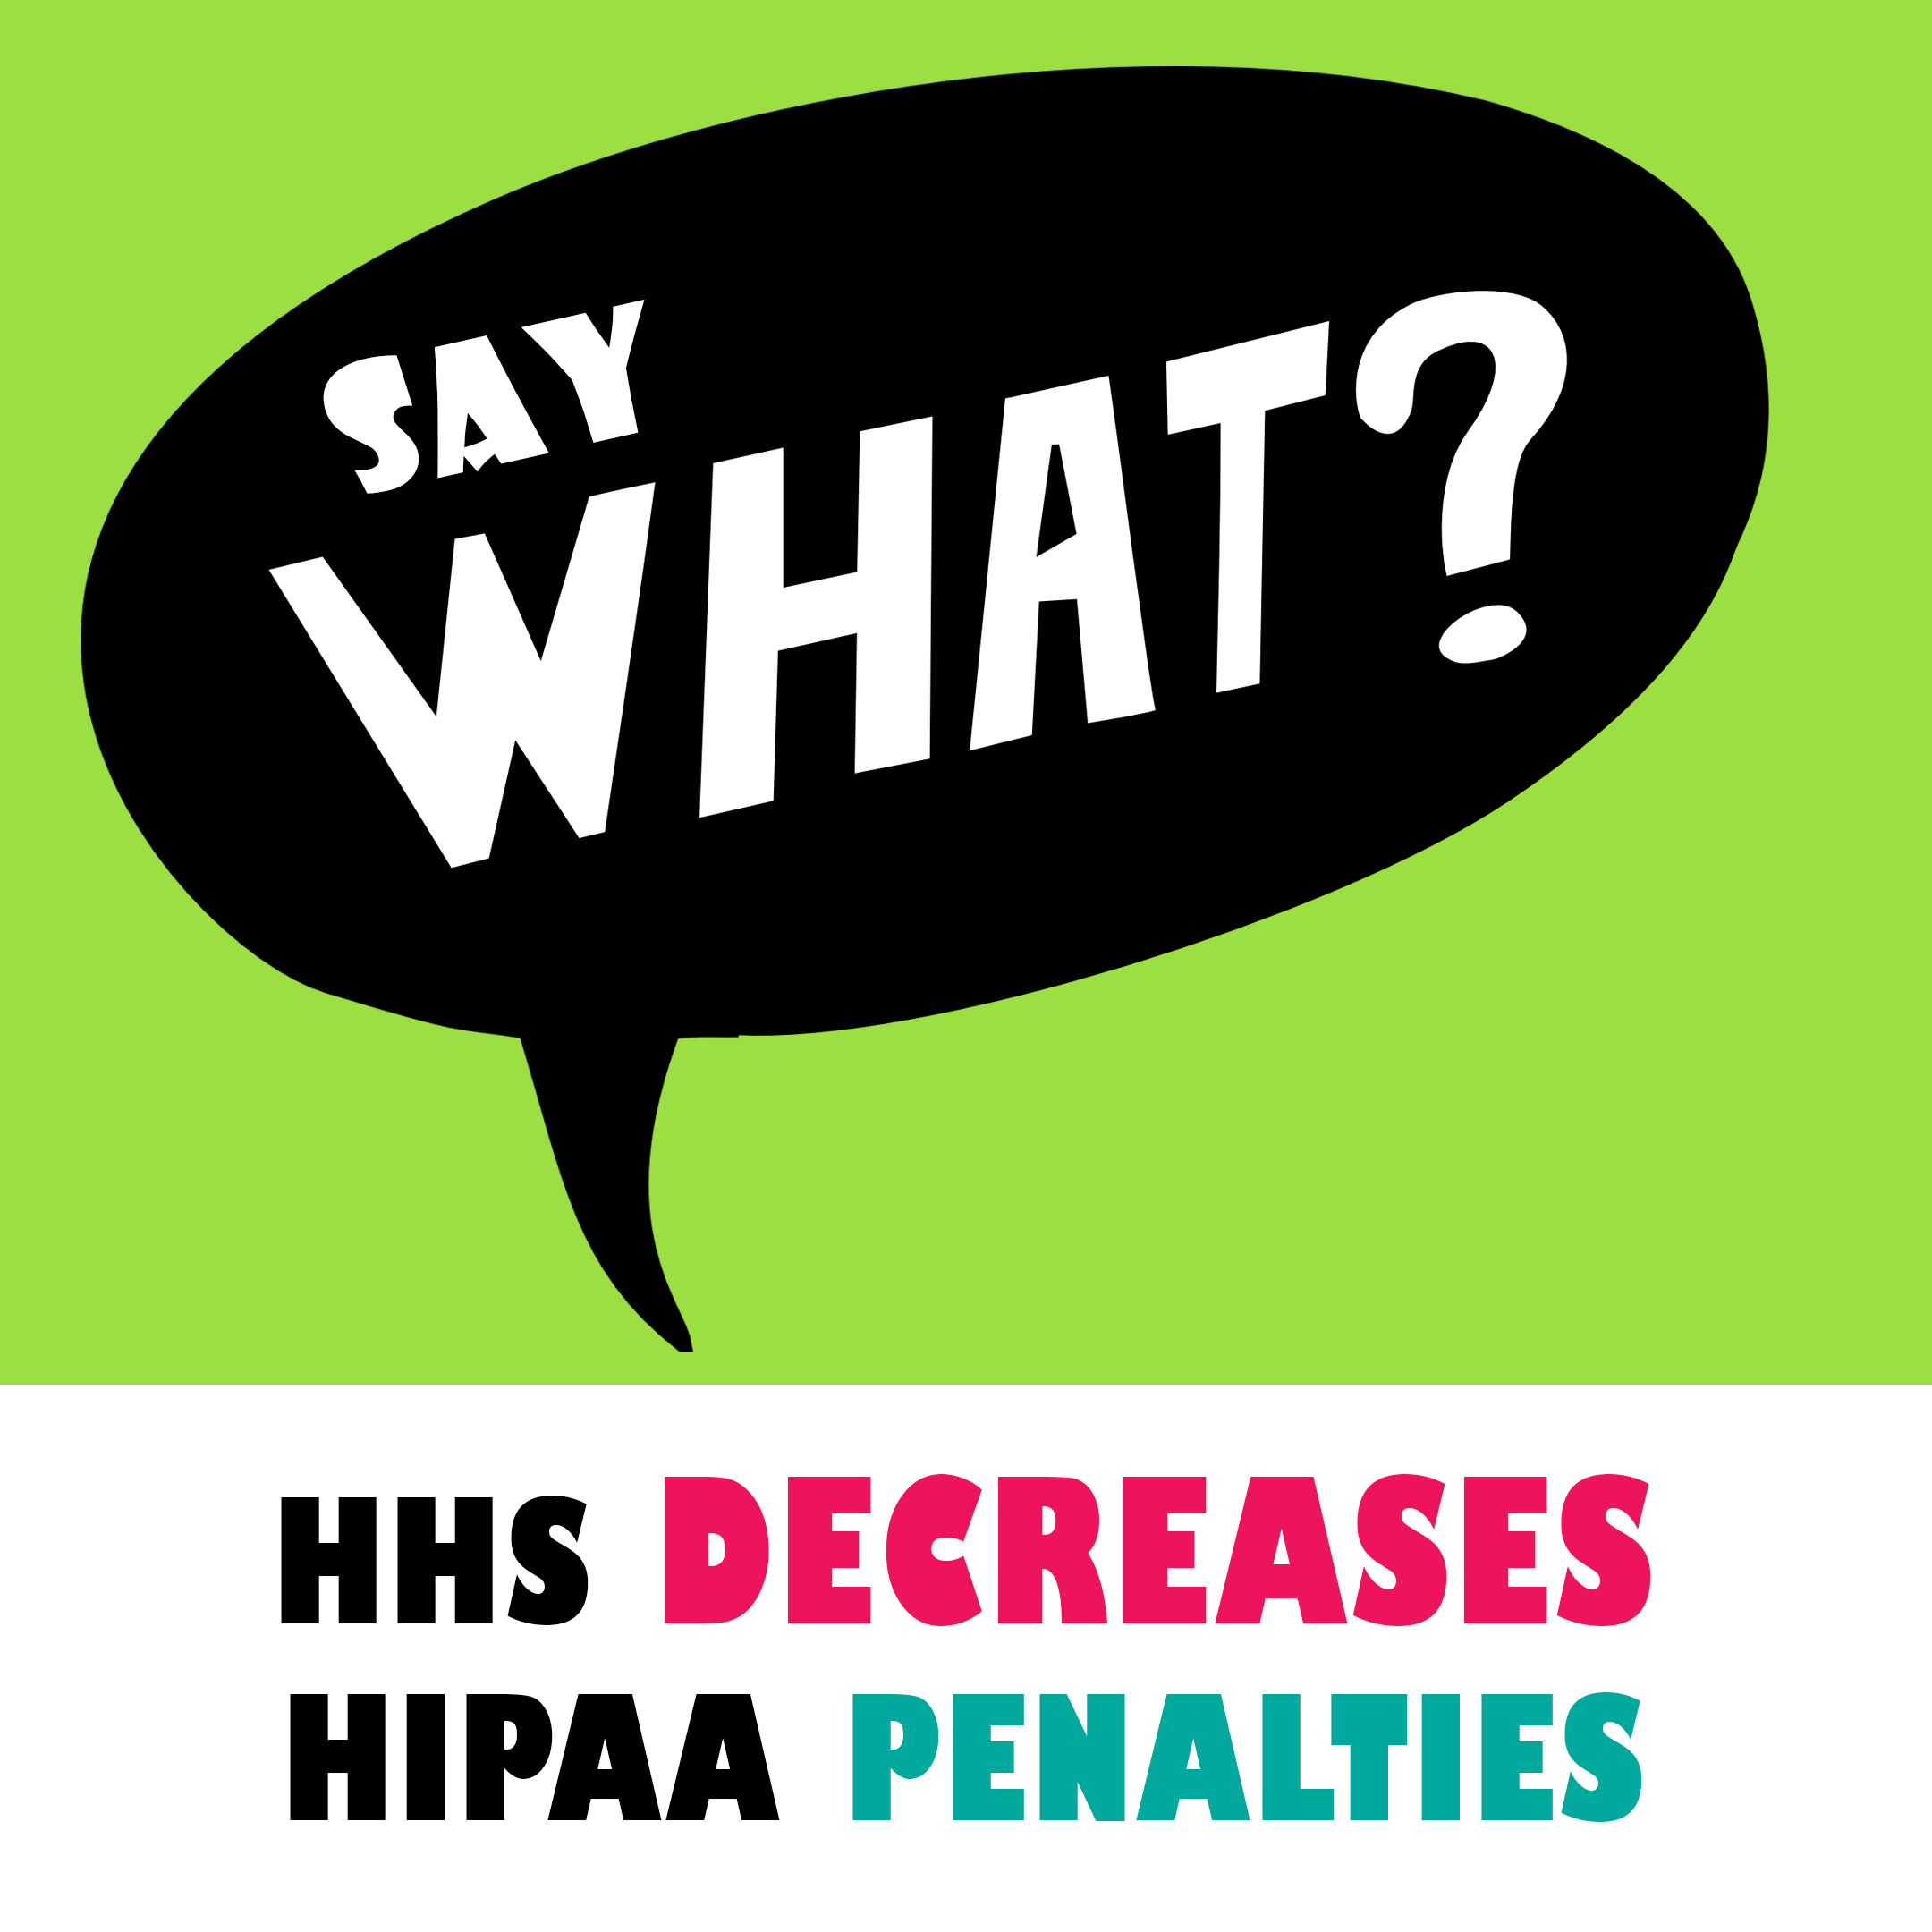 hhs decreases hippa penalties